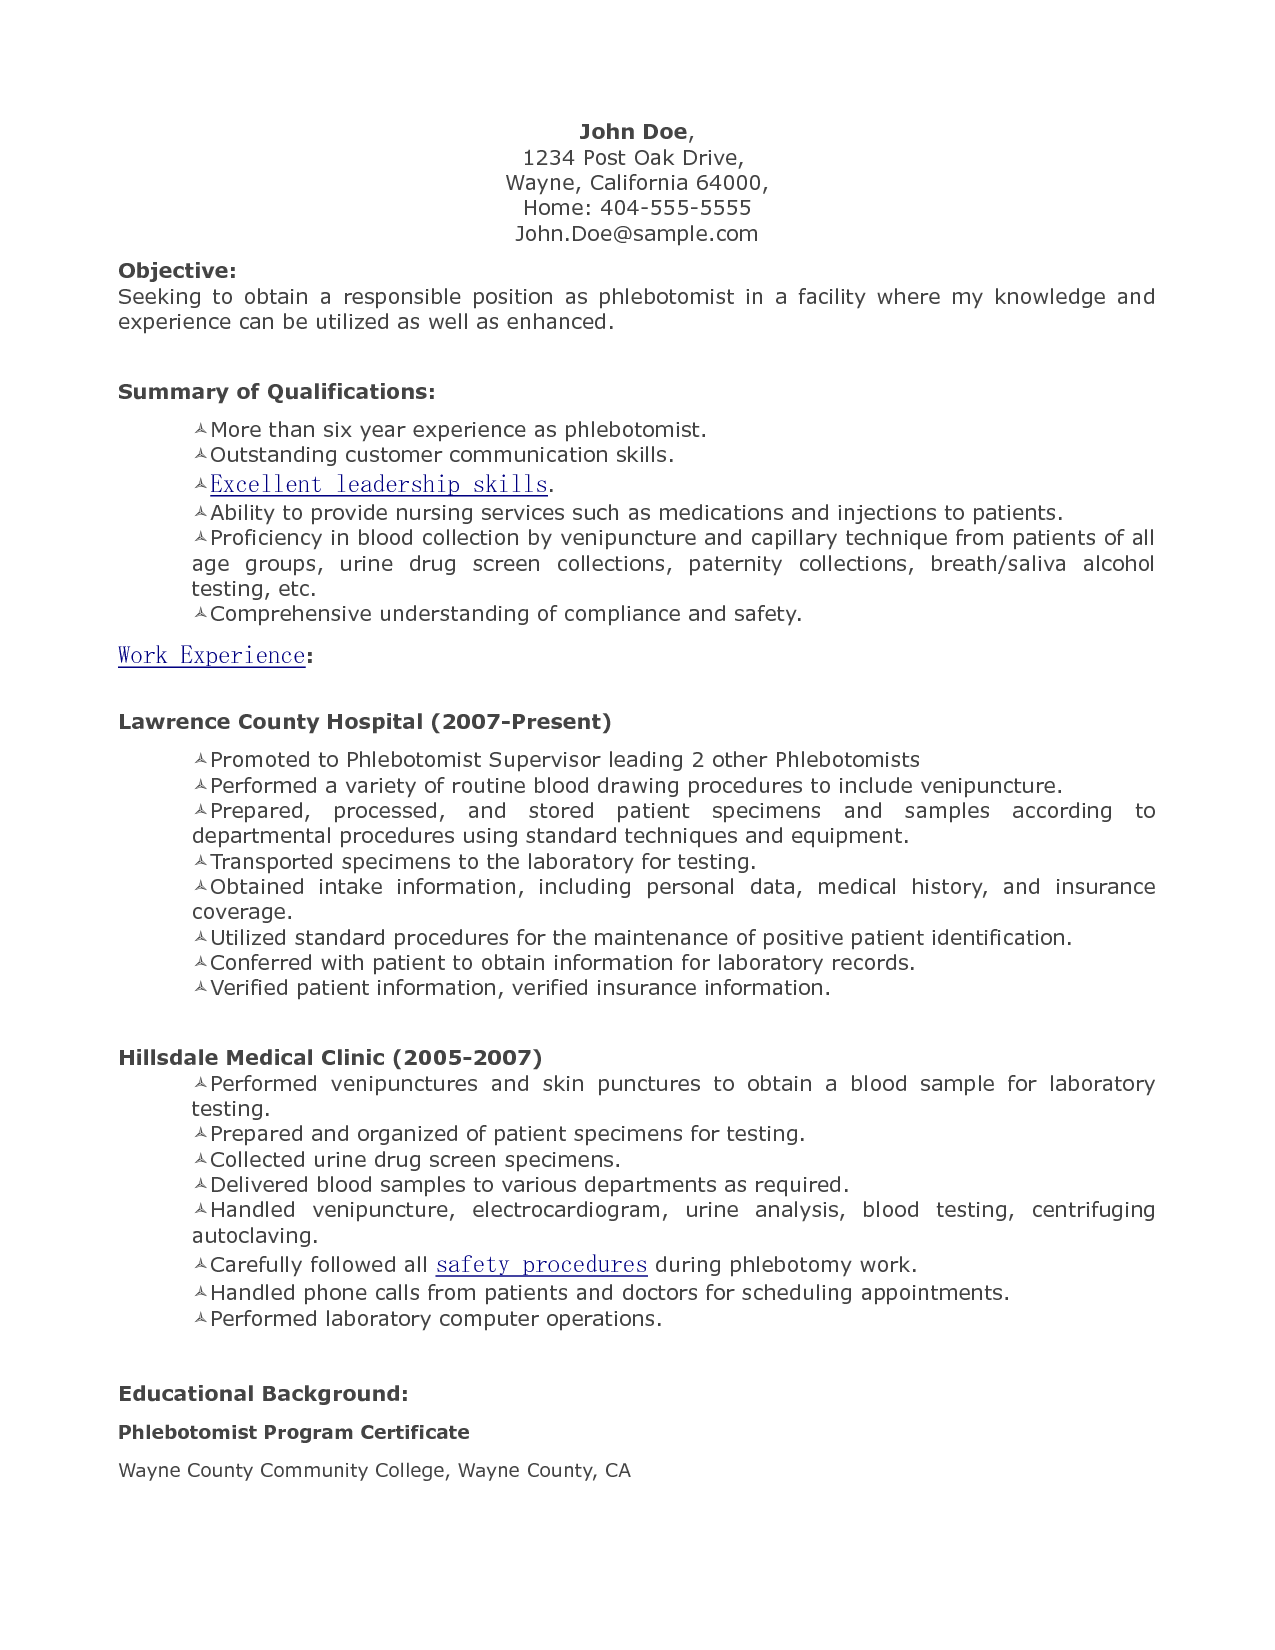 resume objectives for a phlebotomist sample phlebotomist resume resume objectives for a phlebotomist sample phlebotomist resume